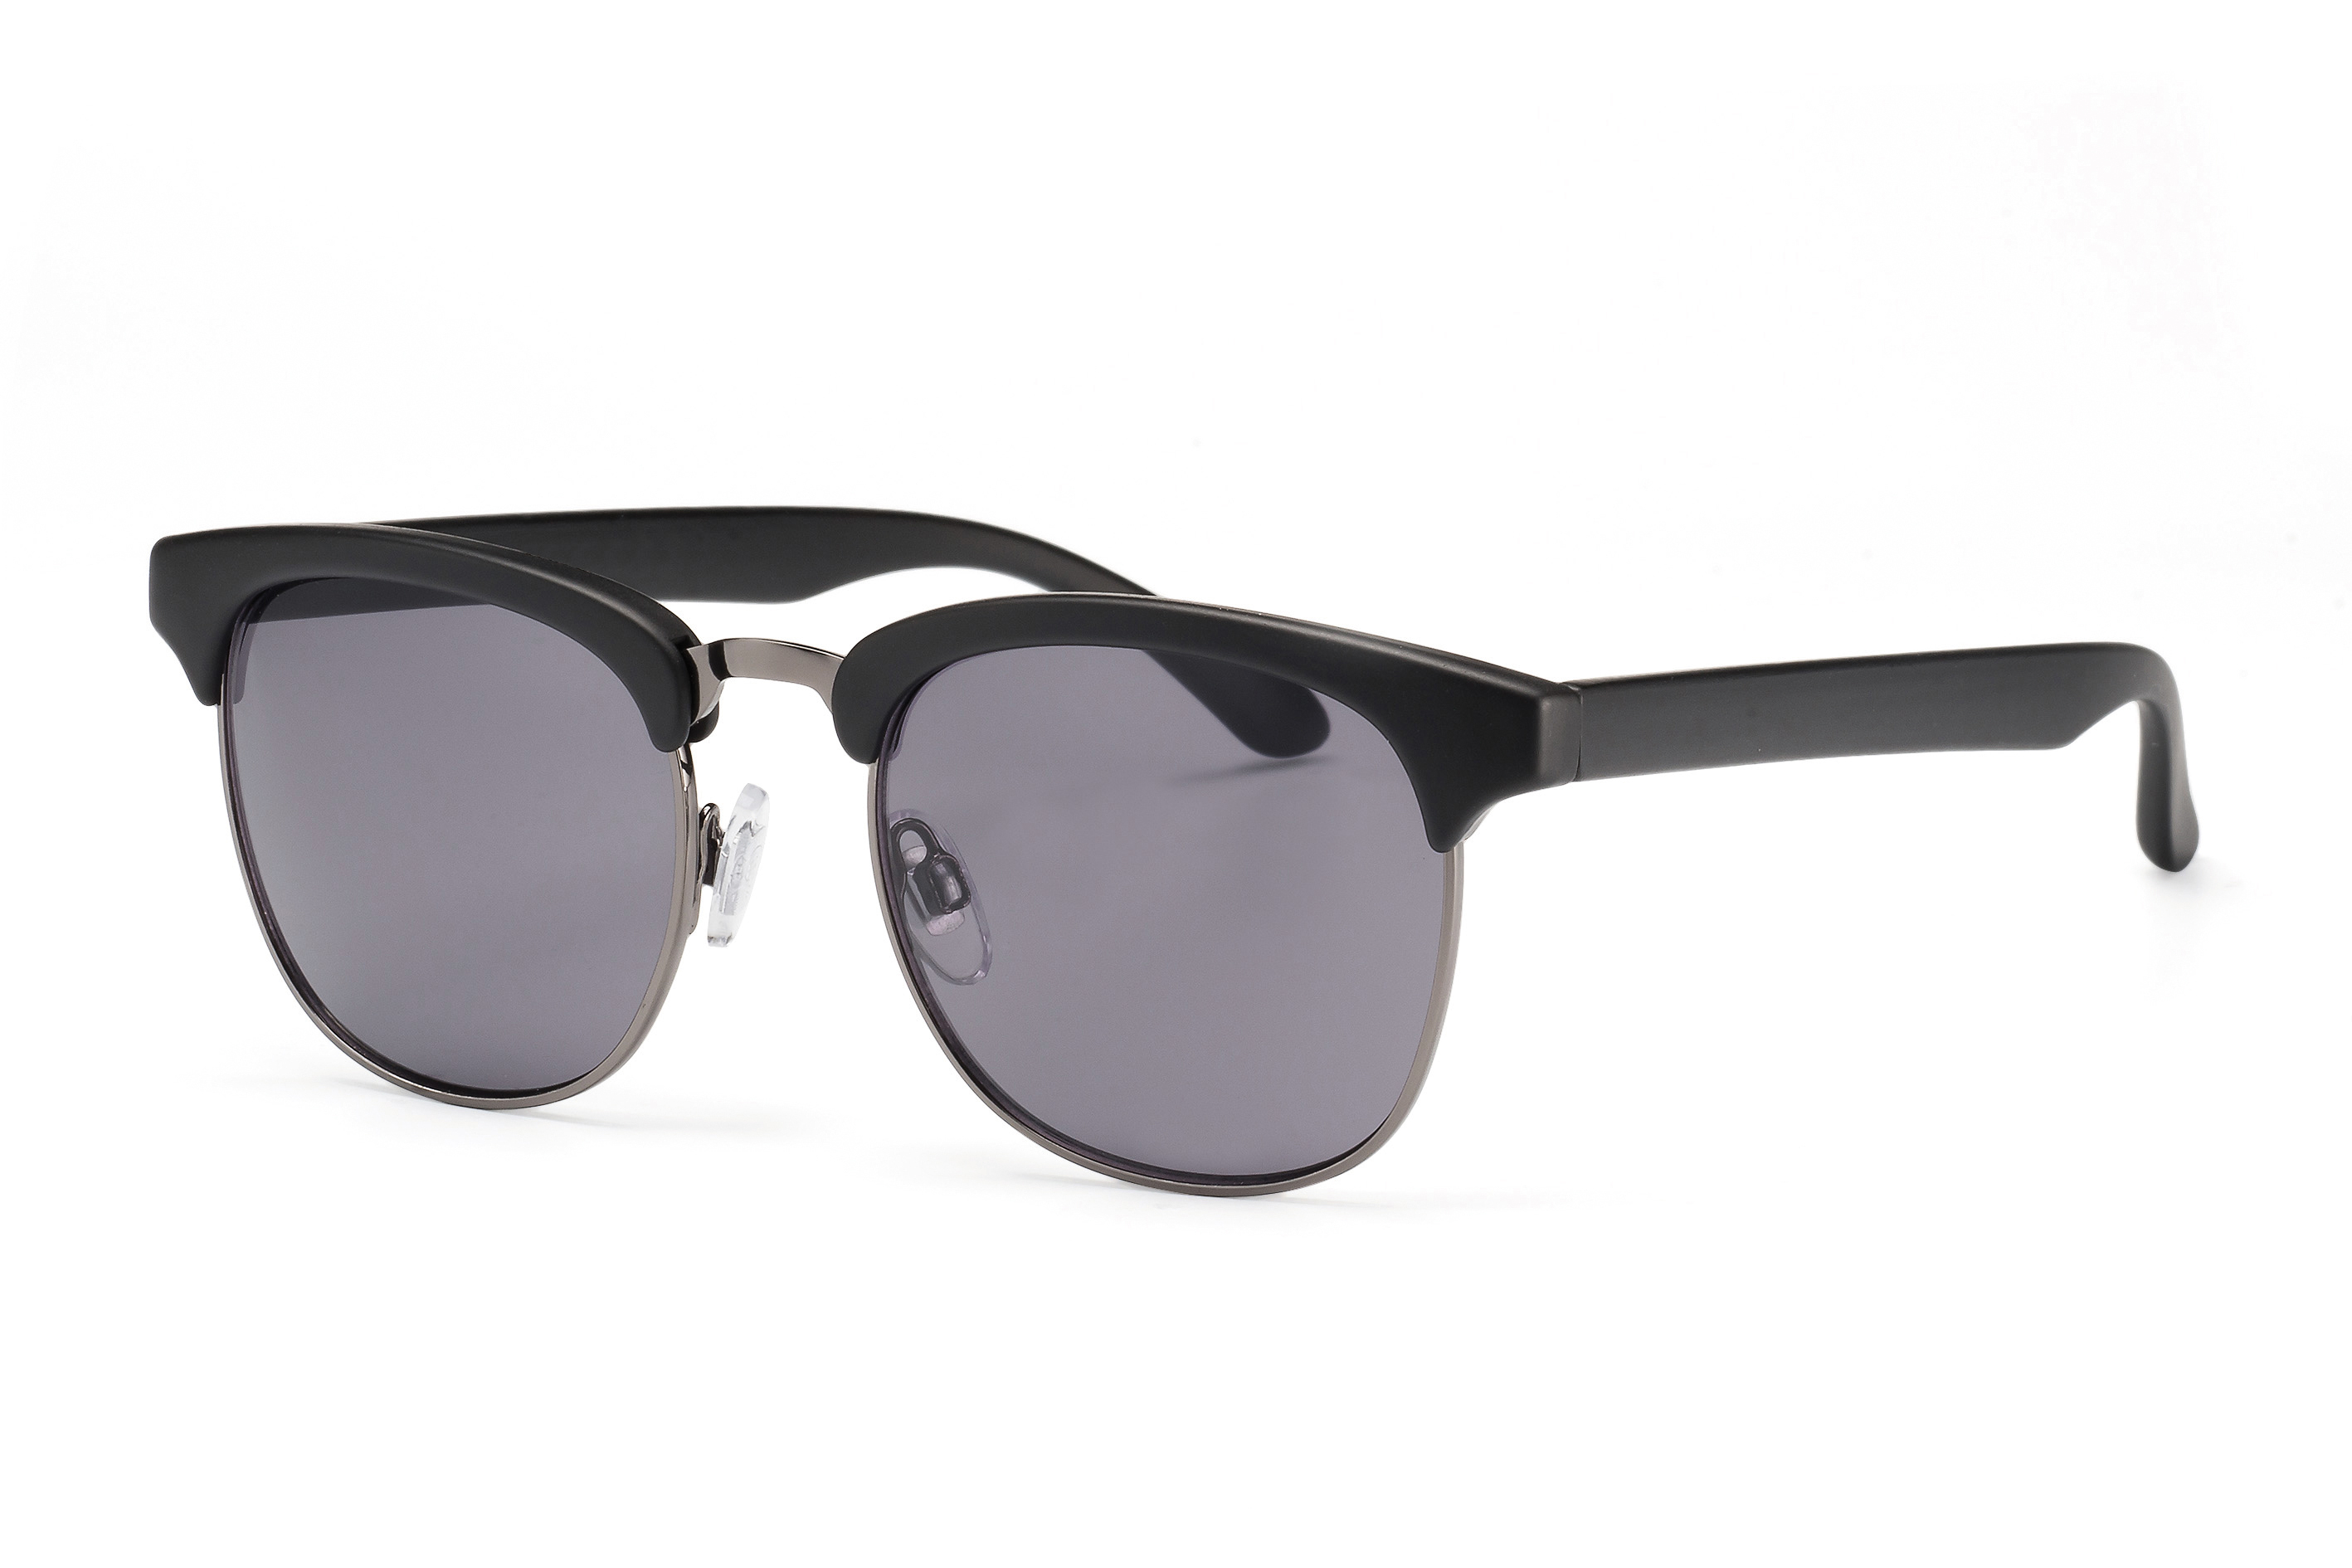 Sonnenbrille Clubmaster Style | 3001317 | Filtral